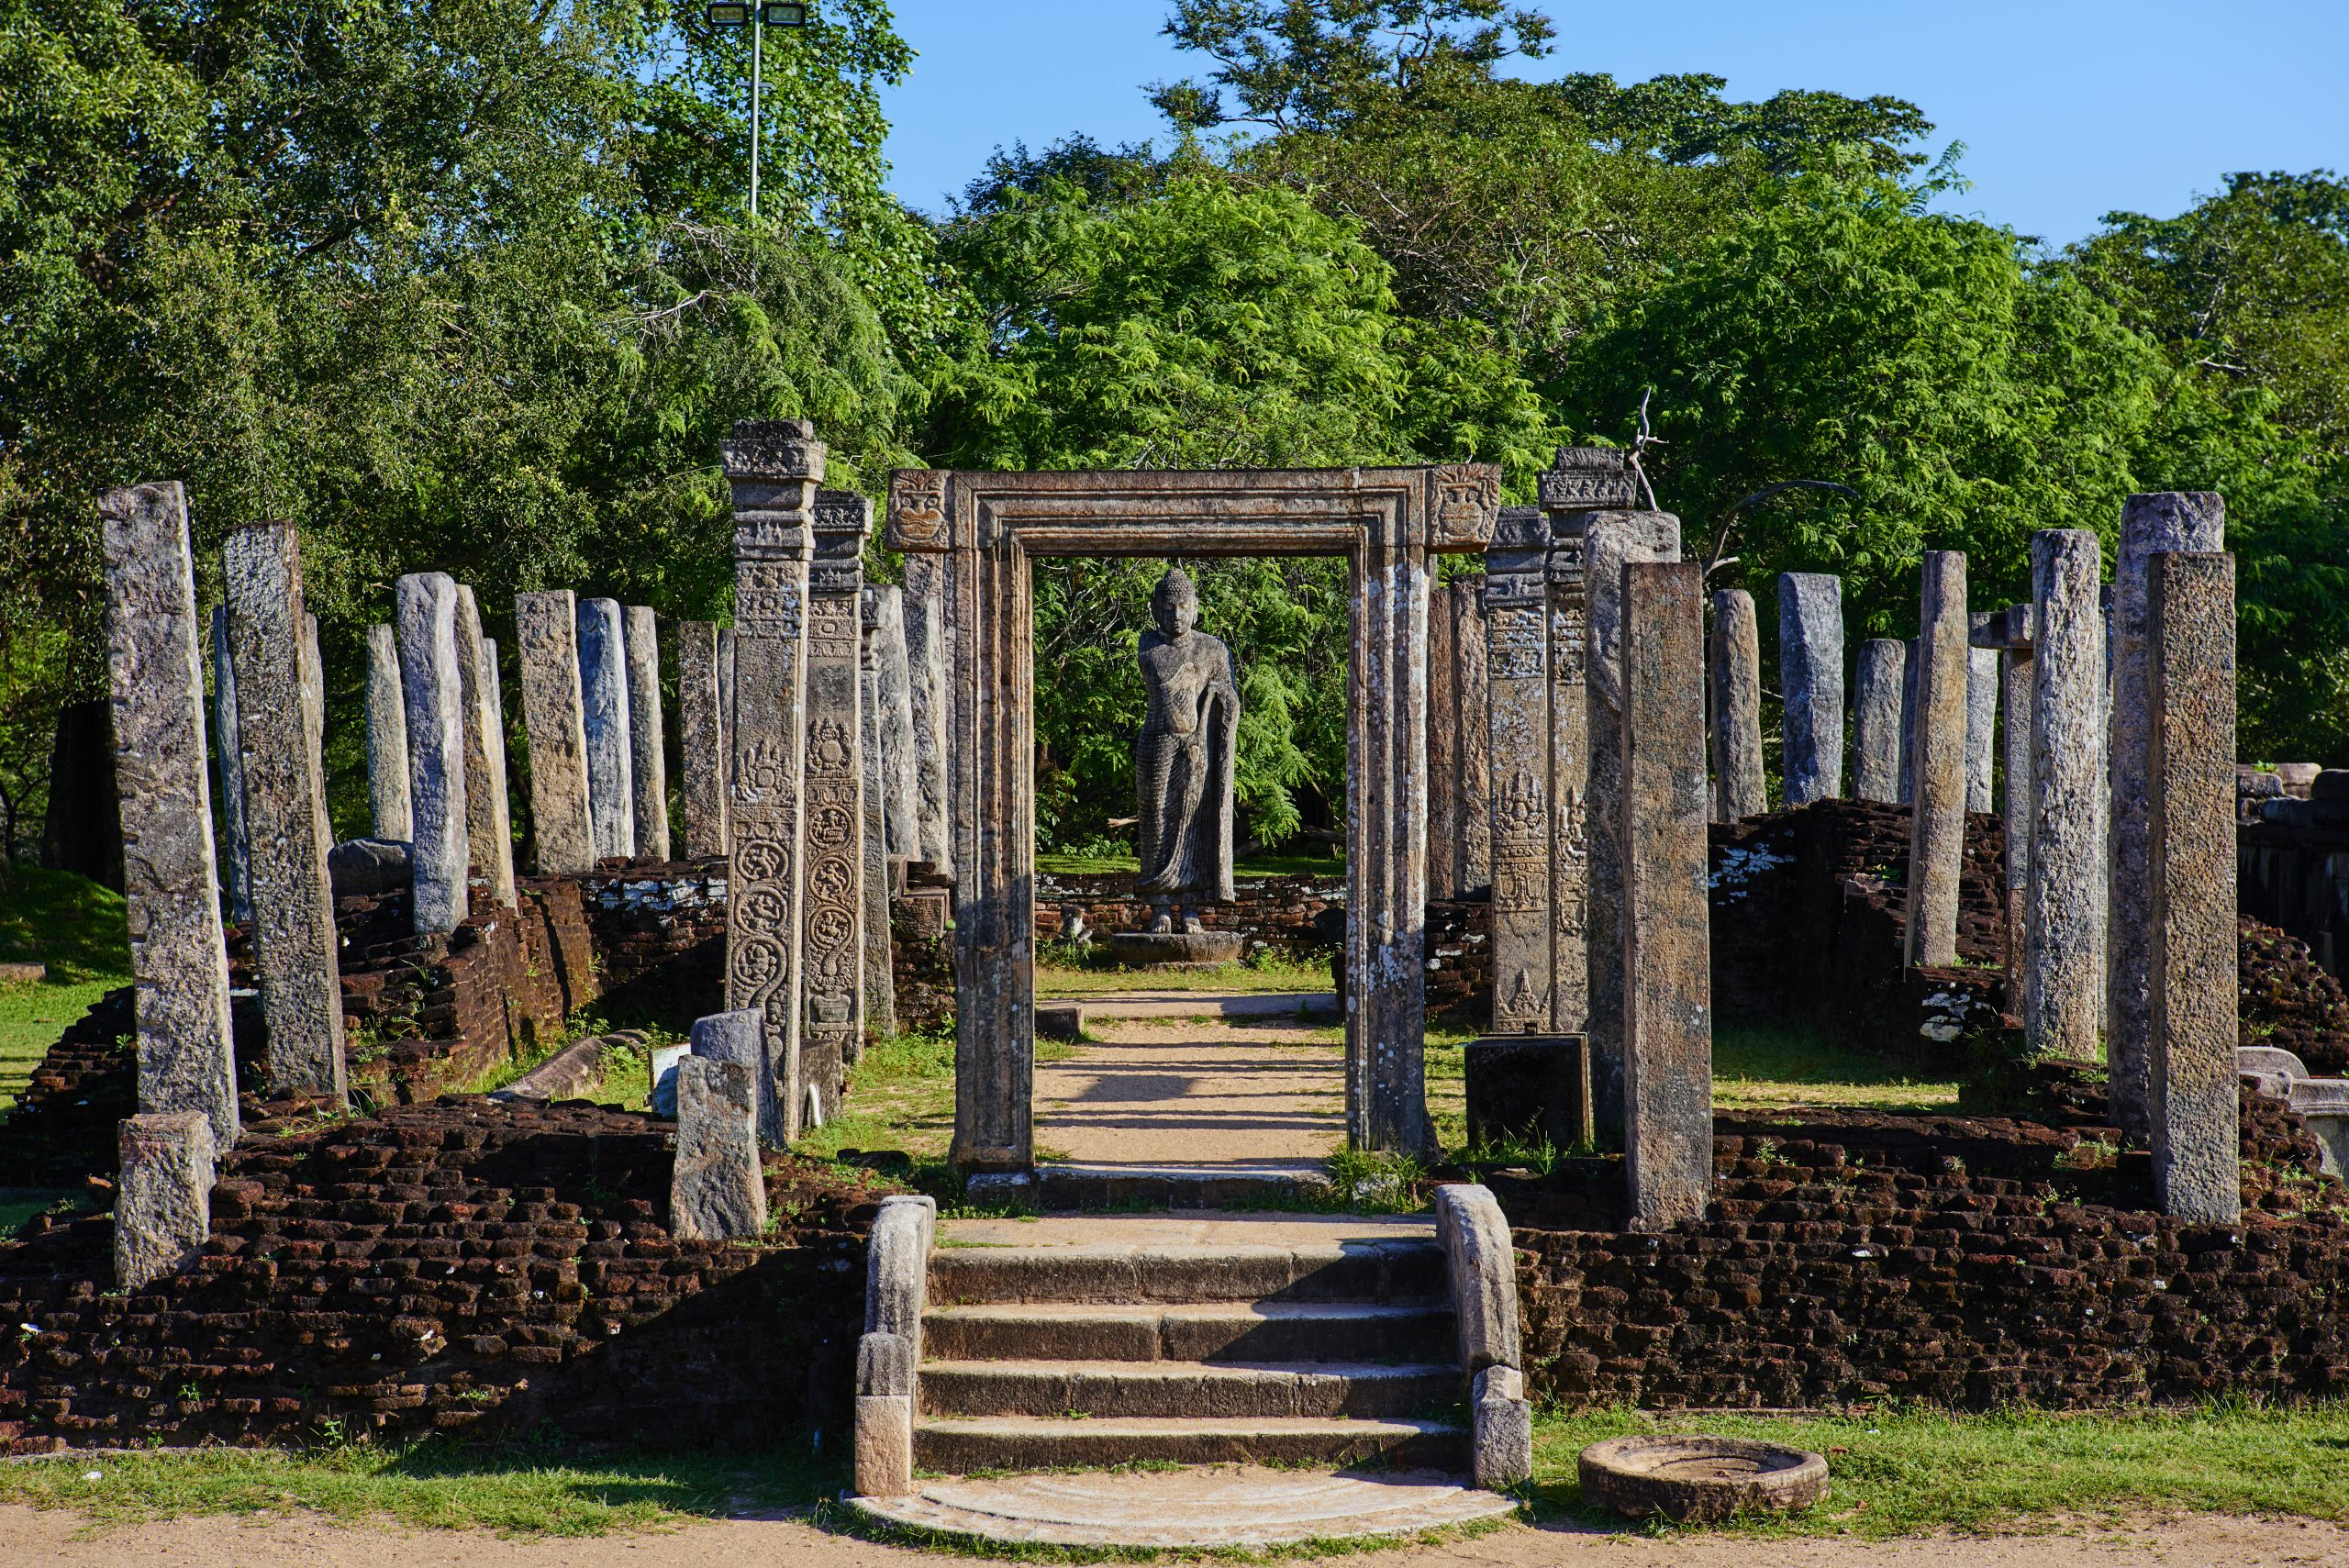 Sri Lanka, Polonnaruwa, quadrangle